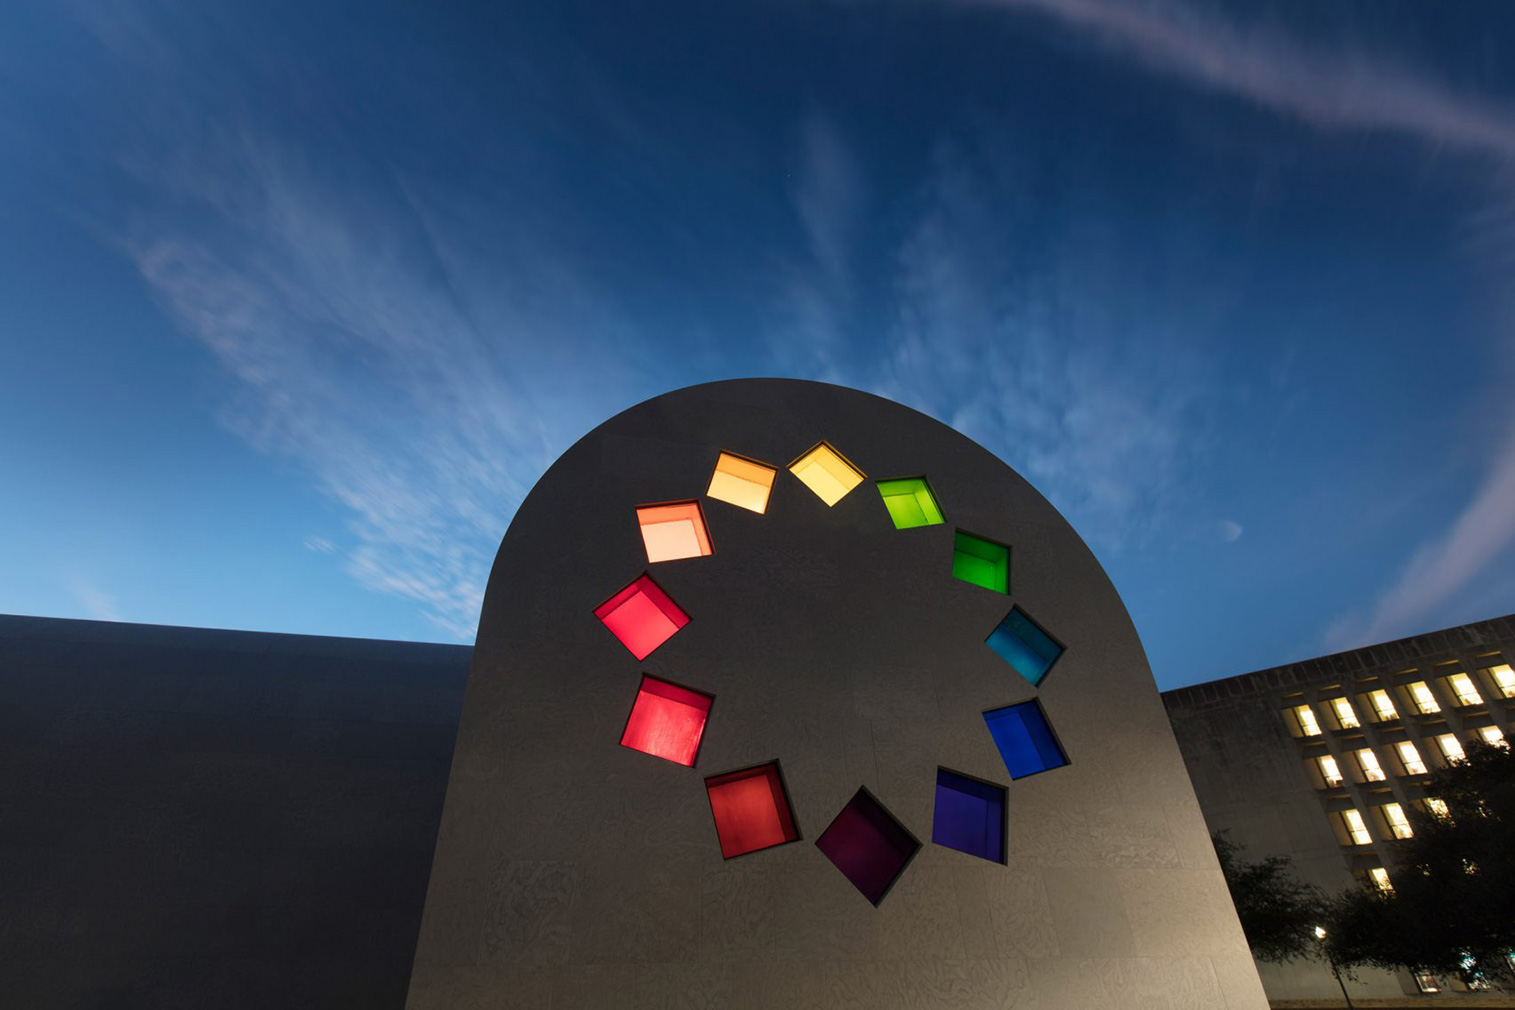 Austin pavilion by Ellsworth Kelly at the University of Texas